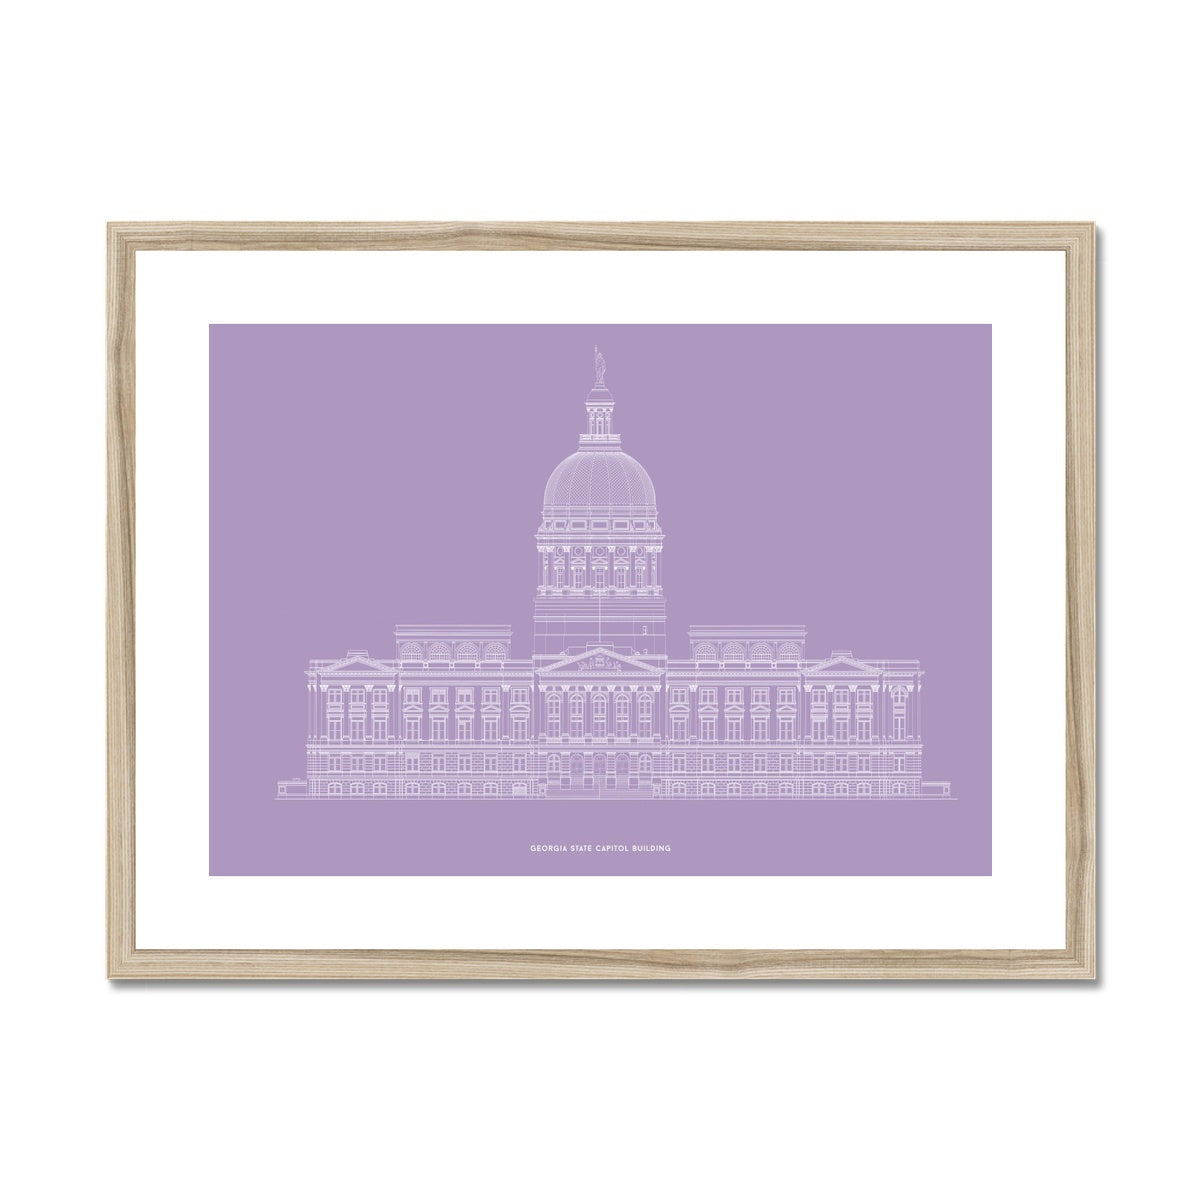 The Georgia State Capitol Building - West Elevation - Lavender -  Framed & Mounted Print